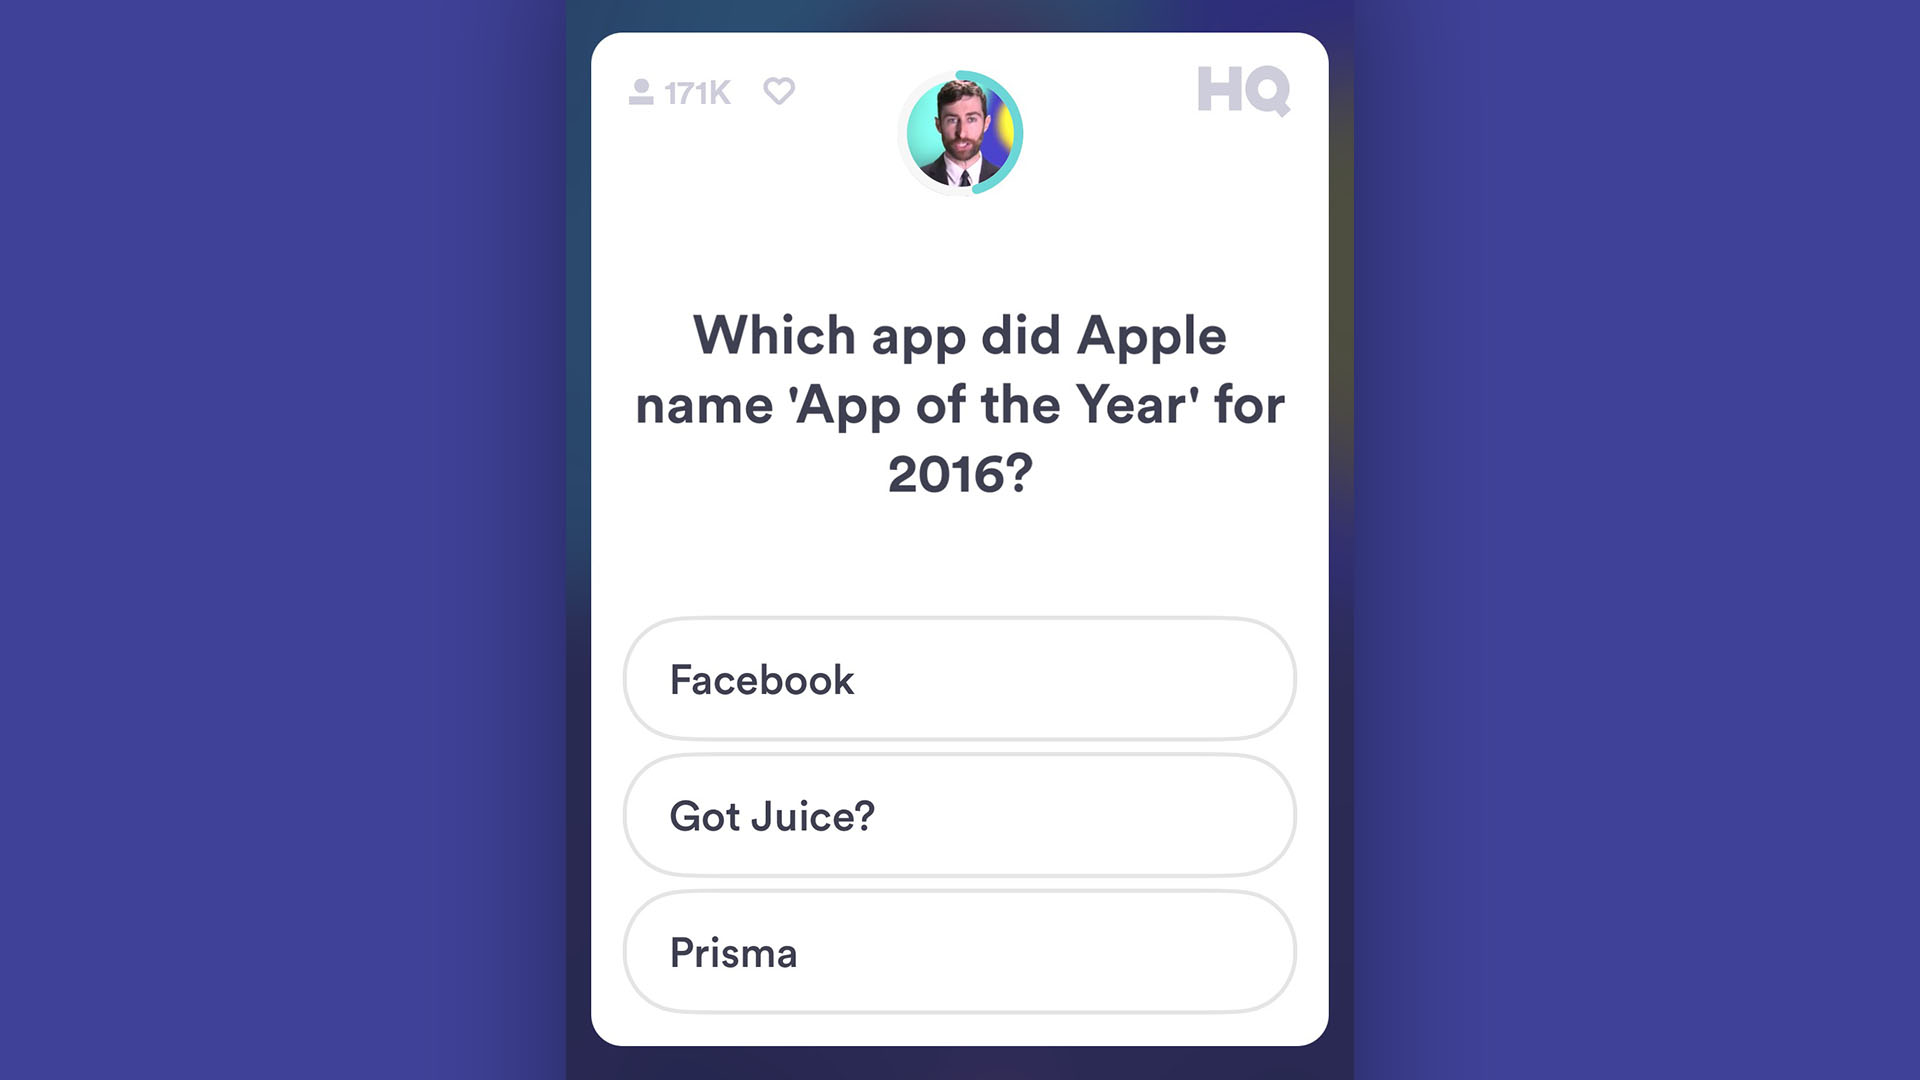 [Update: It lives on] HQ Trivia shuts down after failed acquisition and declining popularity - 9to5Mac